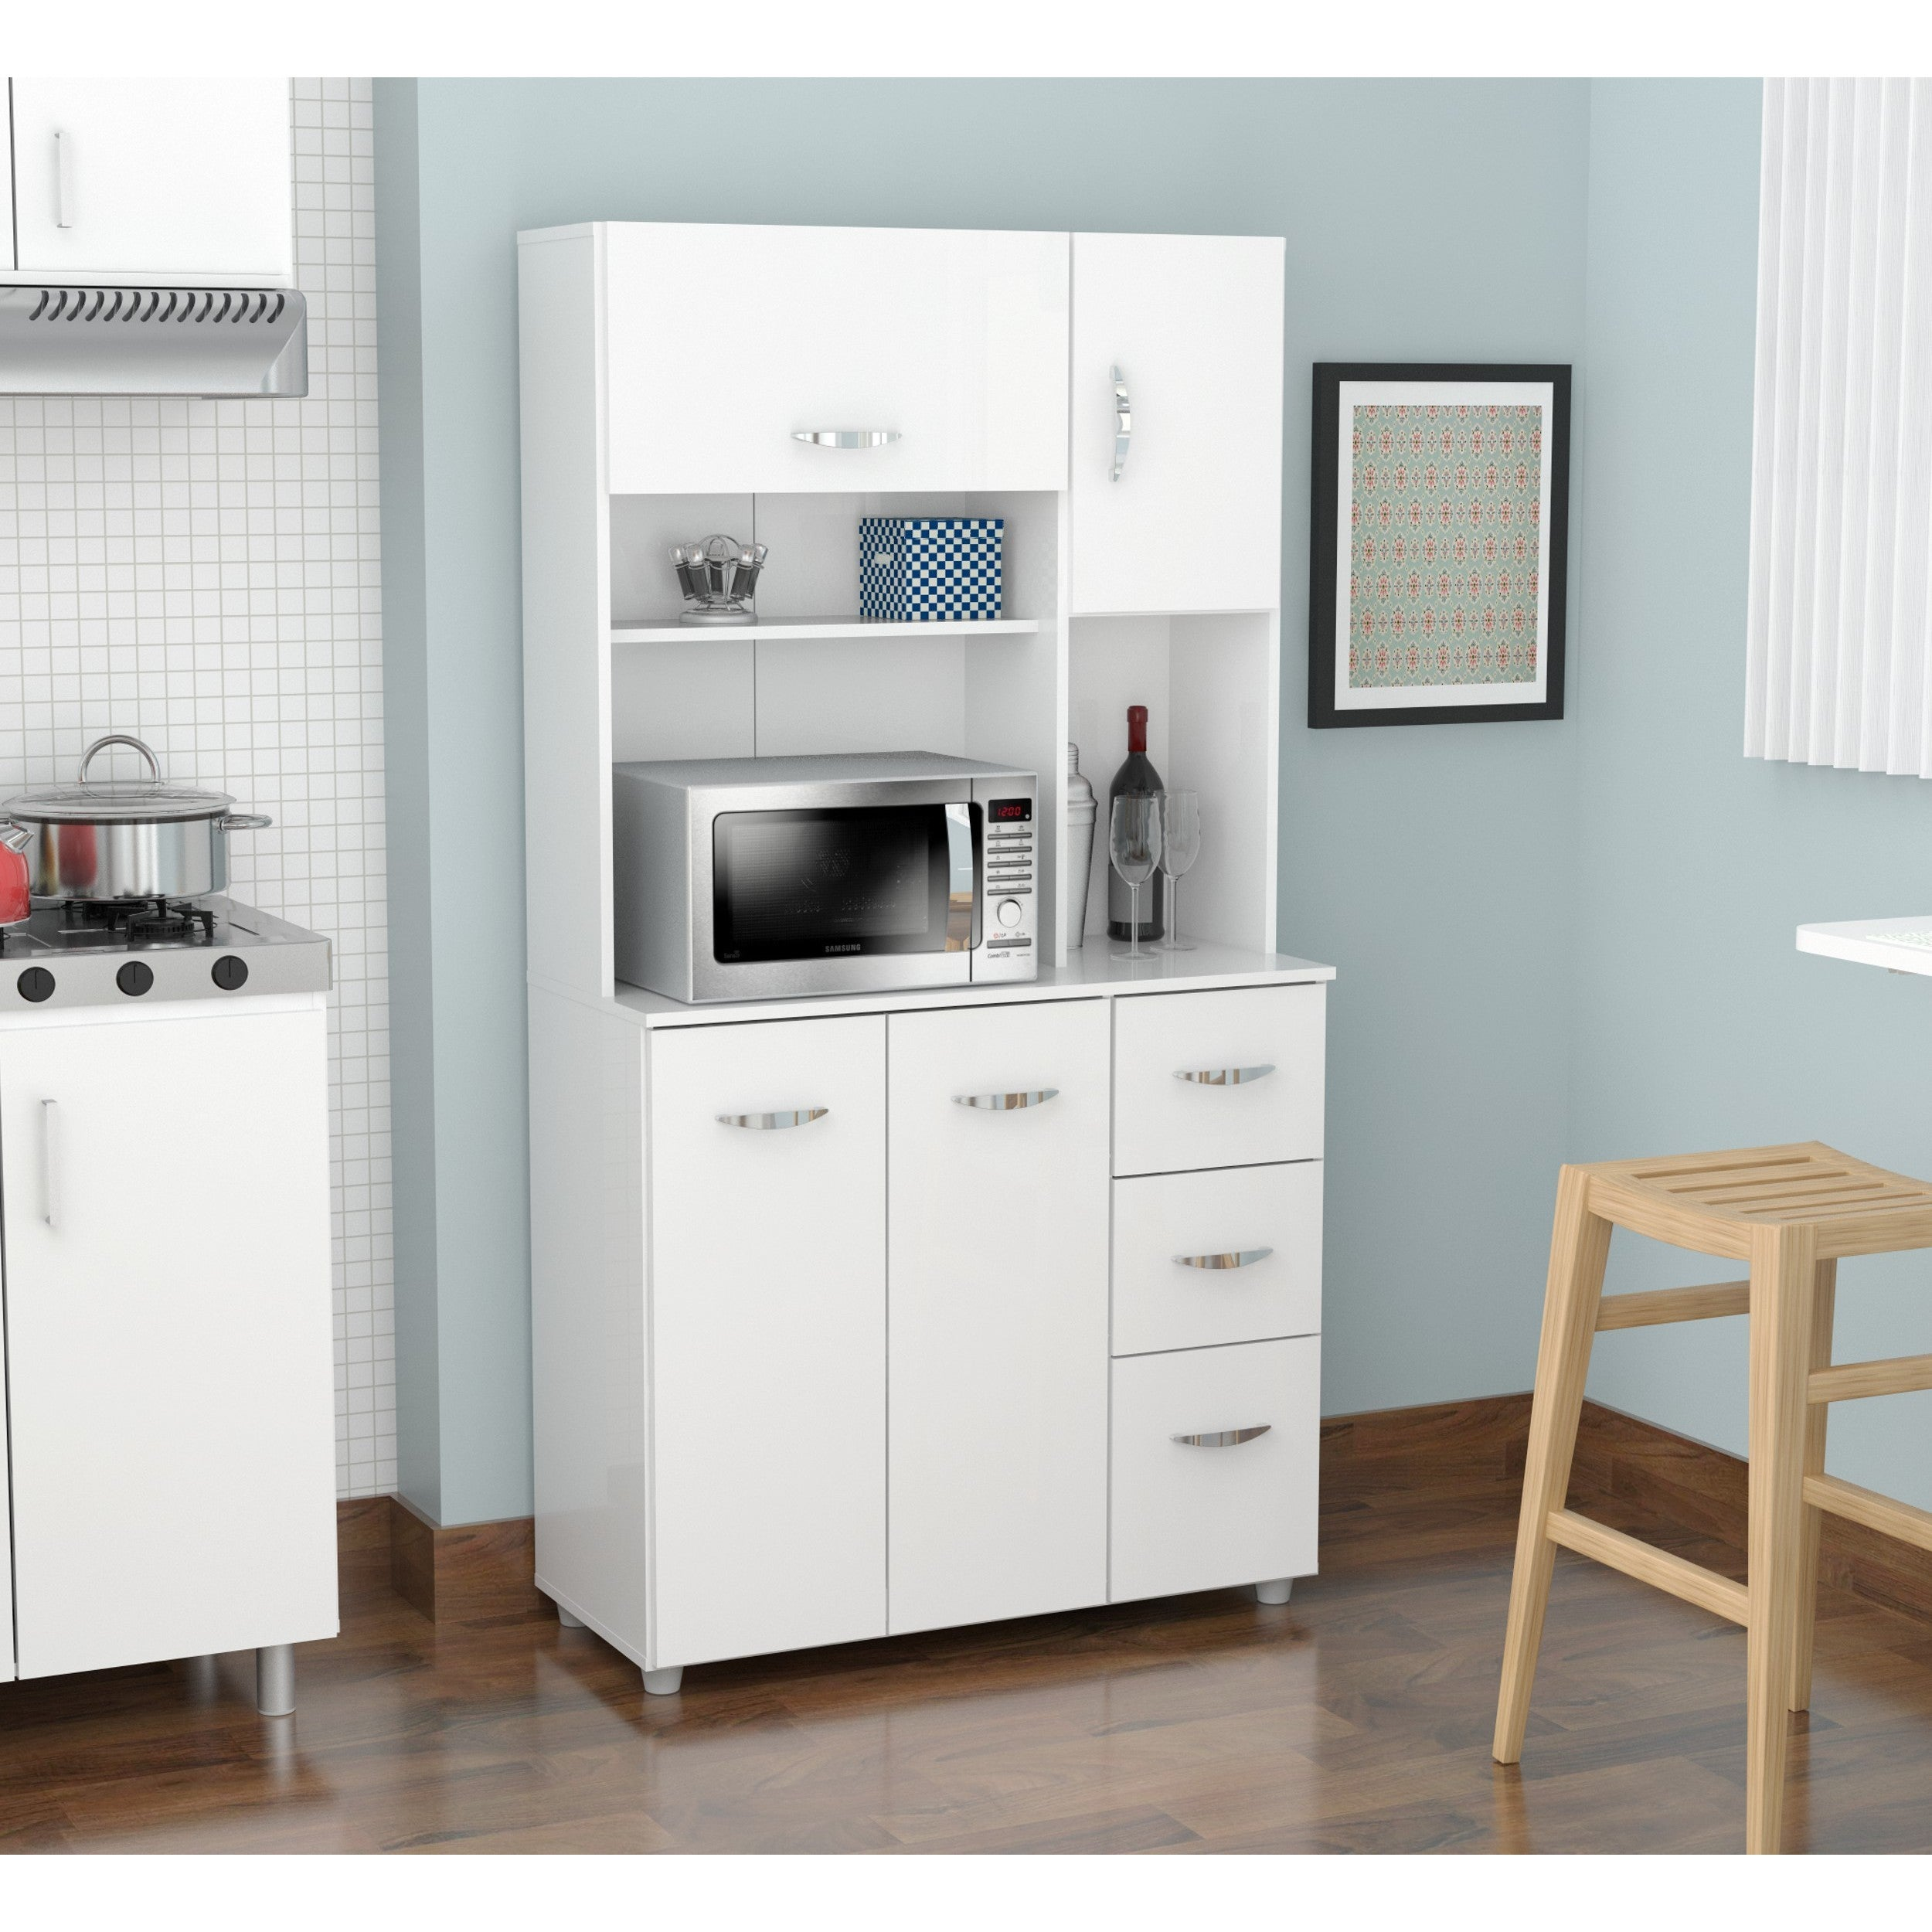 Buy Freestanding Kitchen Cabinets Online at Overstock | Our Best ...